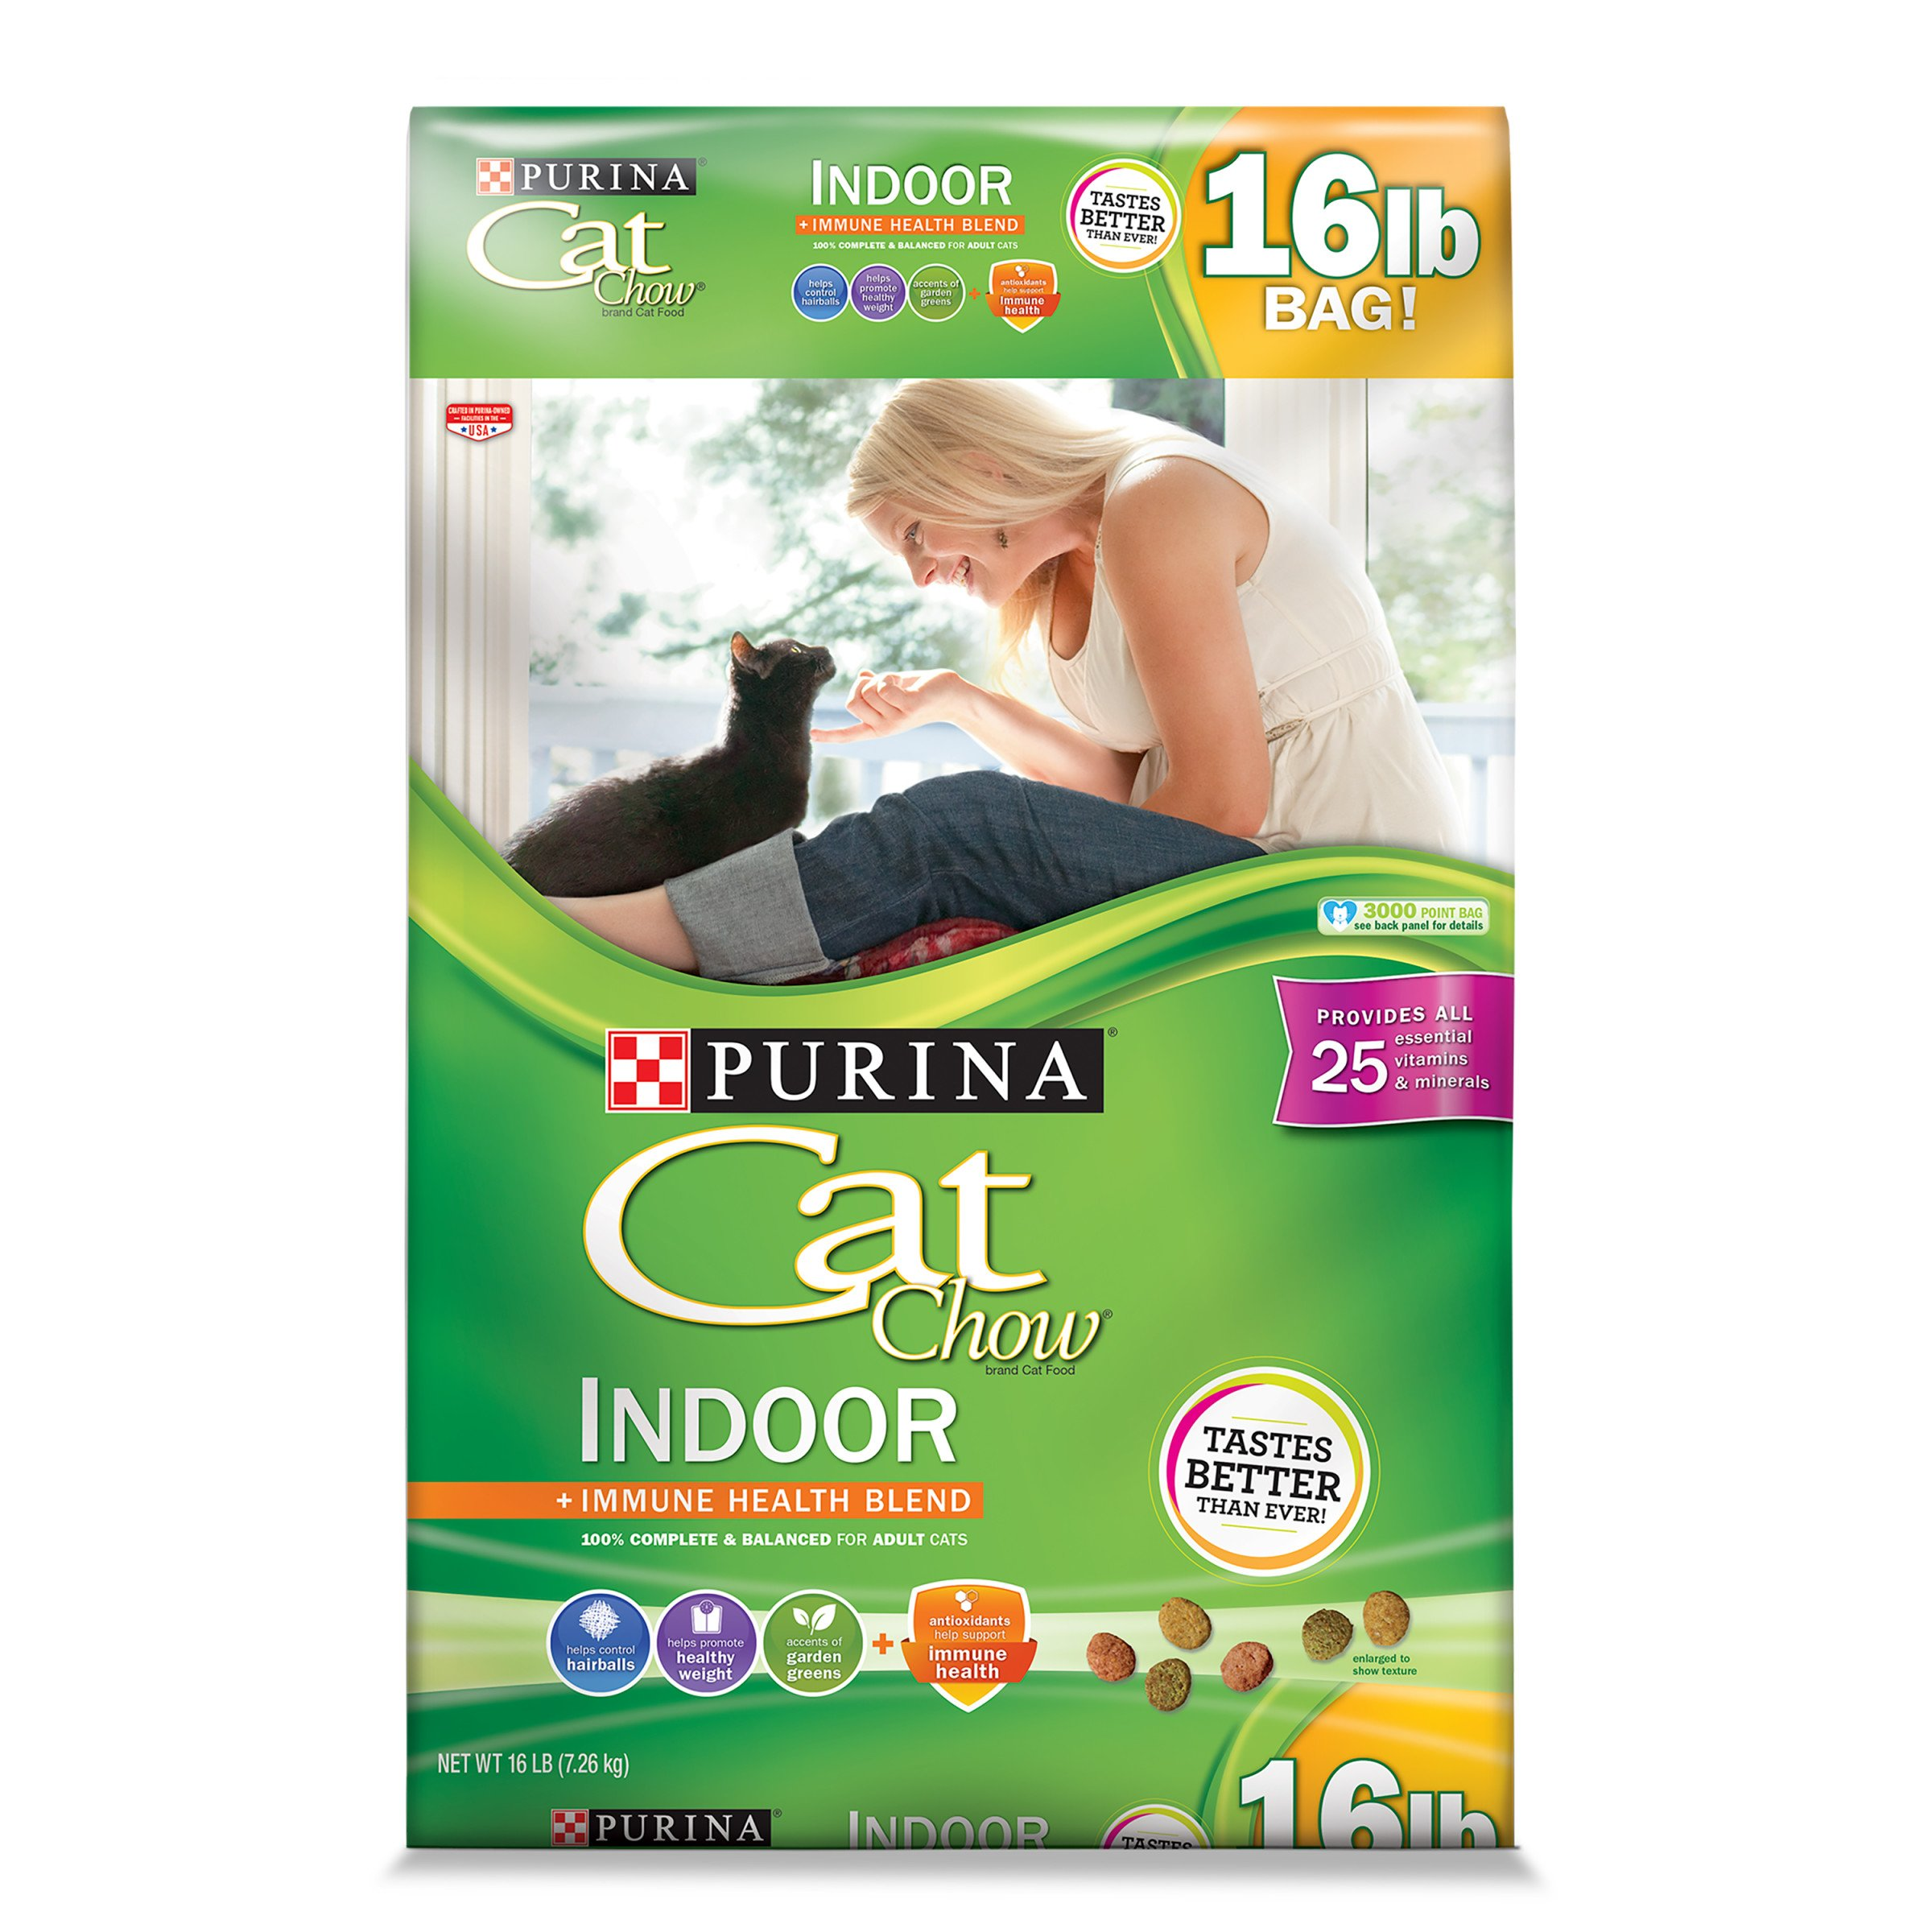 Purina Cat Chow Hairball, Healthy Weight, Indoor Dry Cat Food, Indoor - 16 lb. Bag by Purina Cat Chow